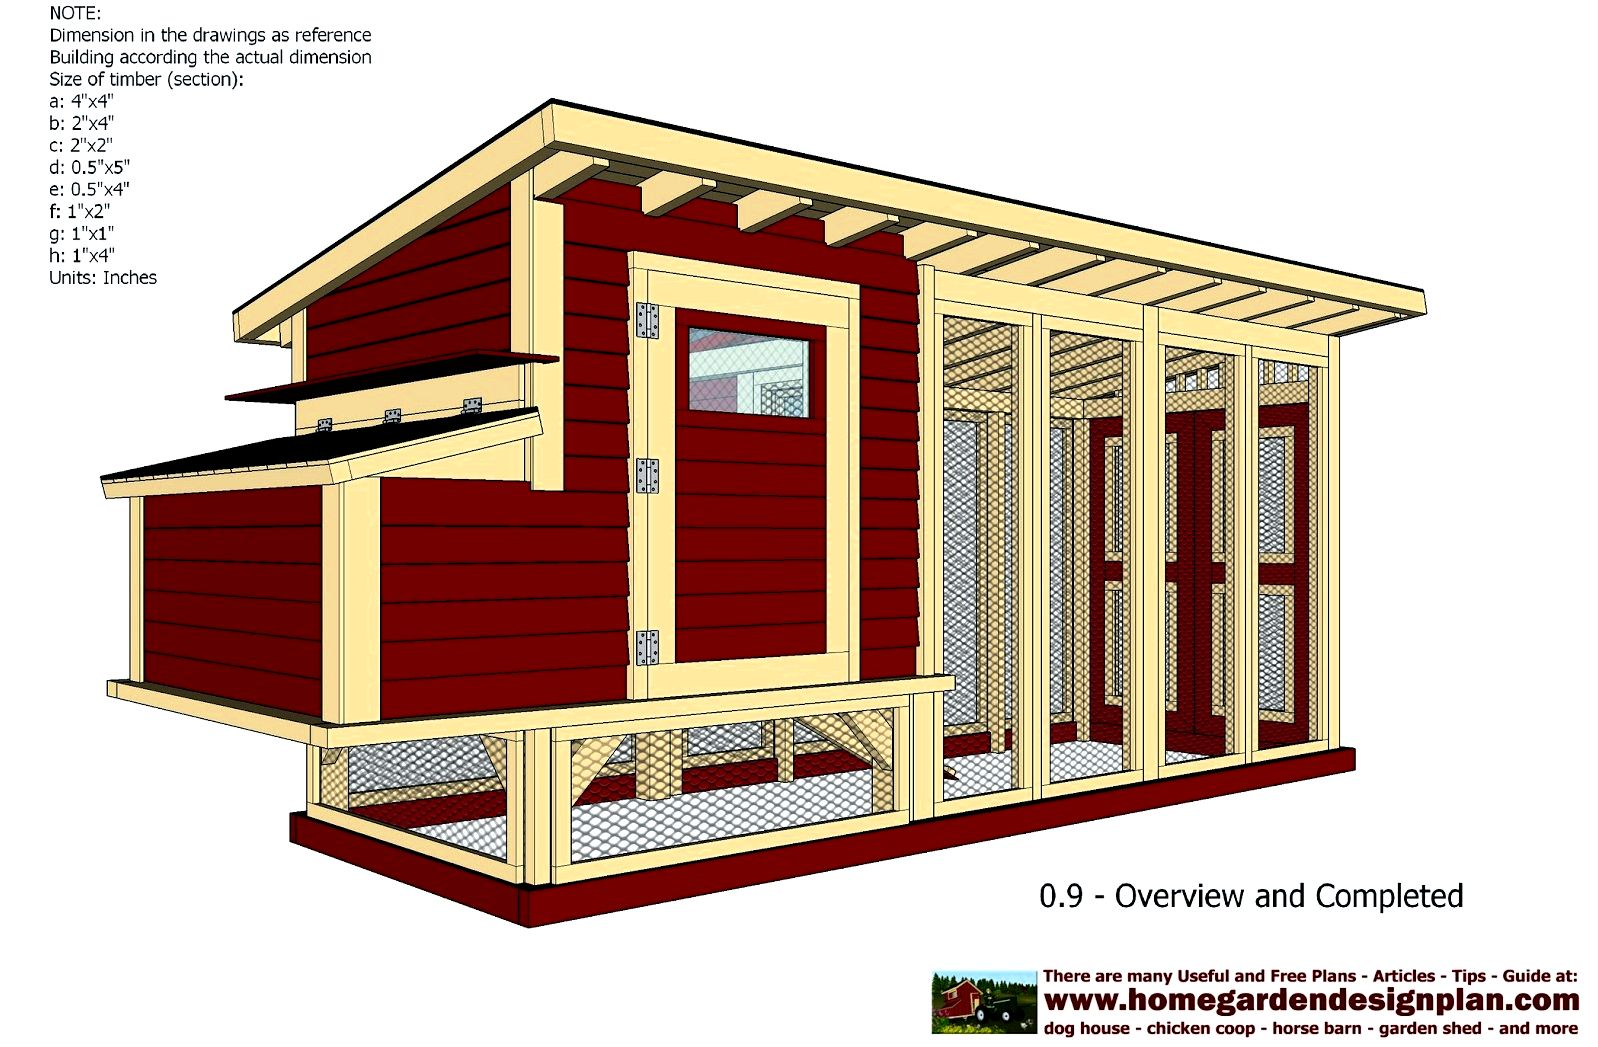 Chicken house plans review – creating a chicken house various chicken breeds and